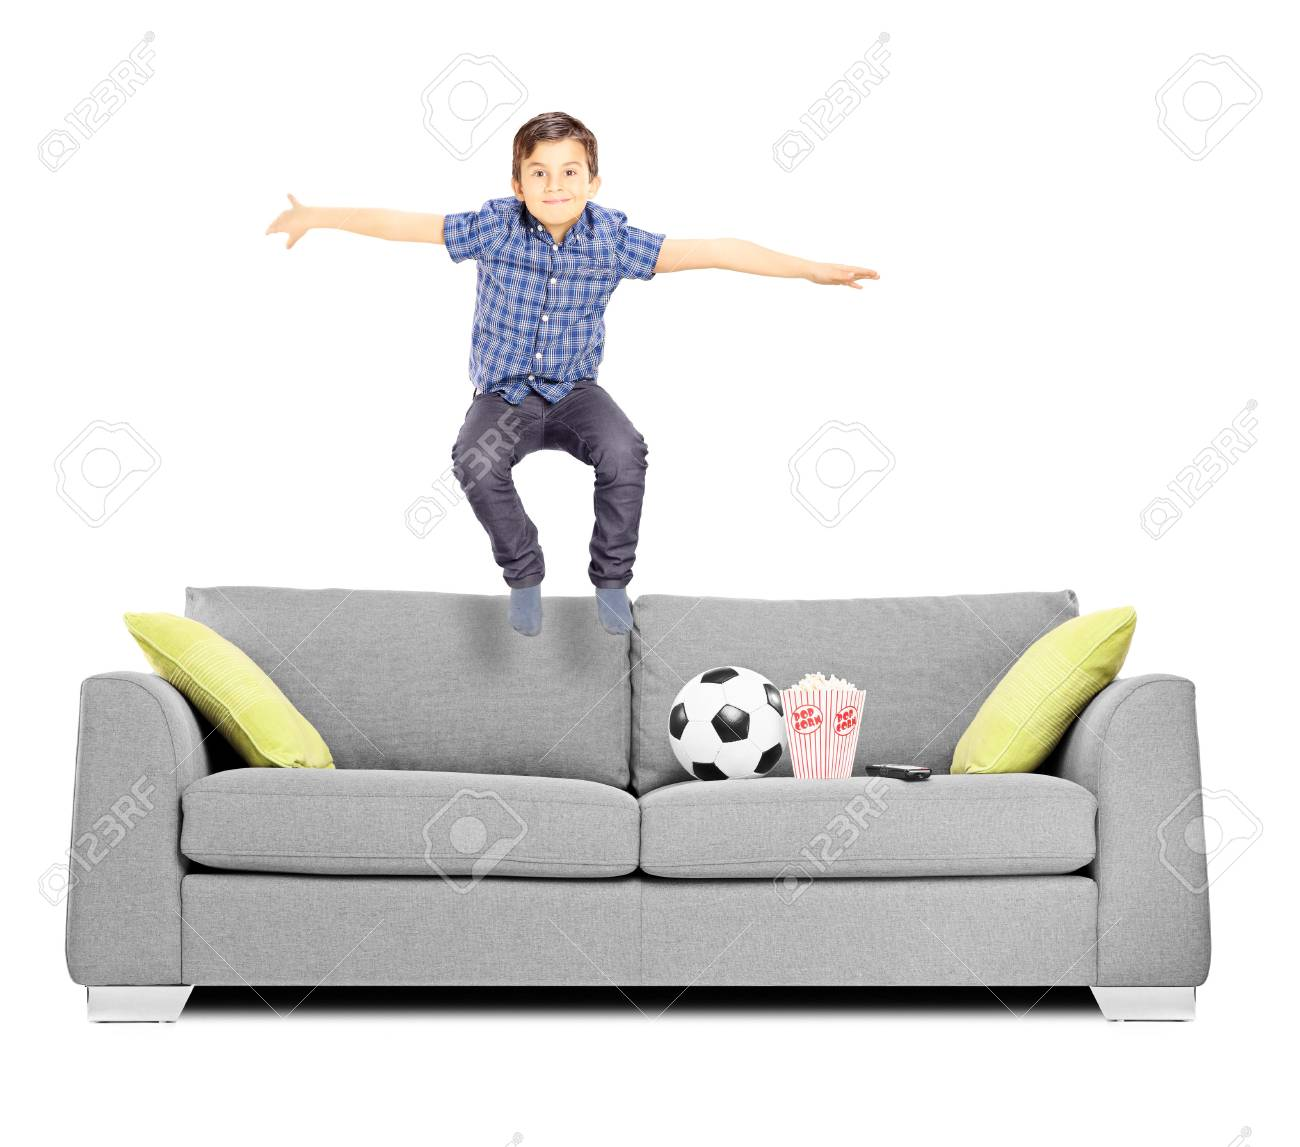 Happy little boy jumping on a sofa isolated on white background Stock Photo - 24594089